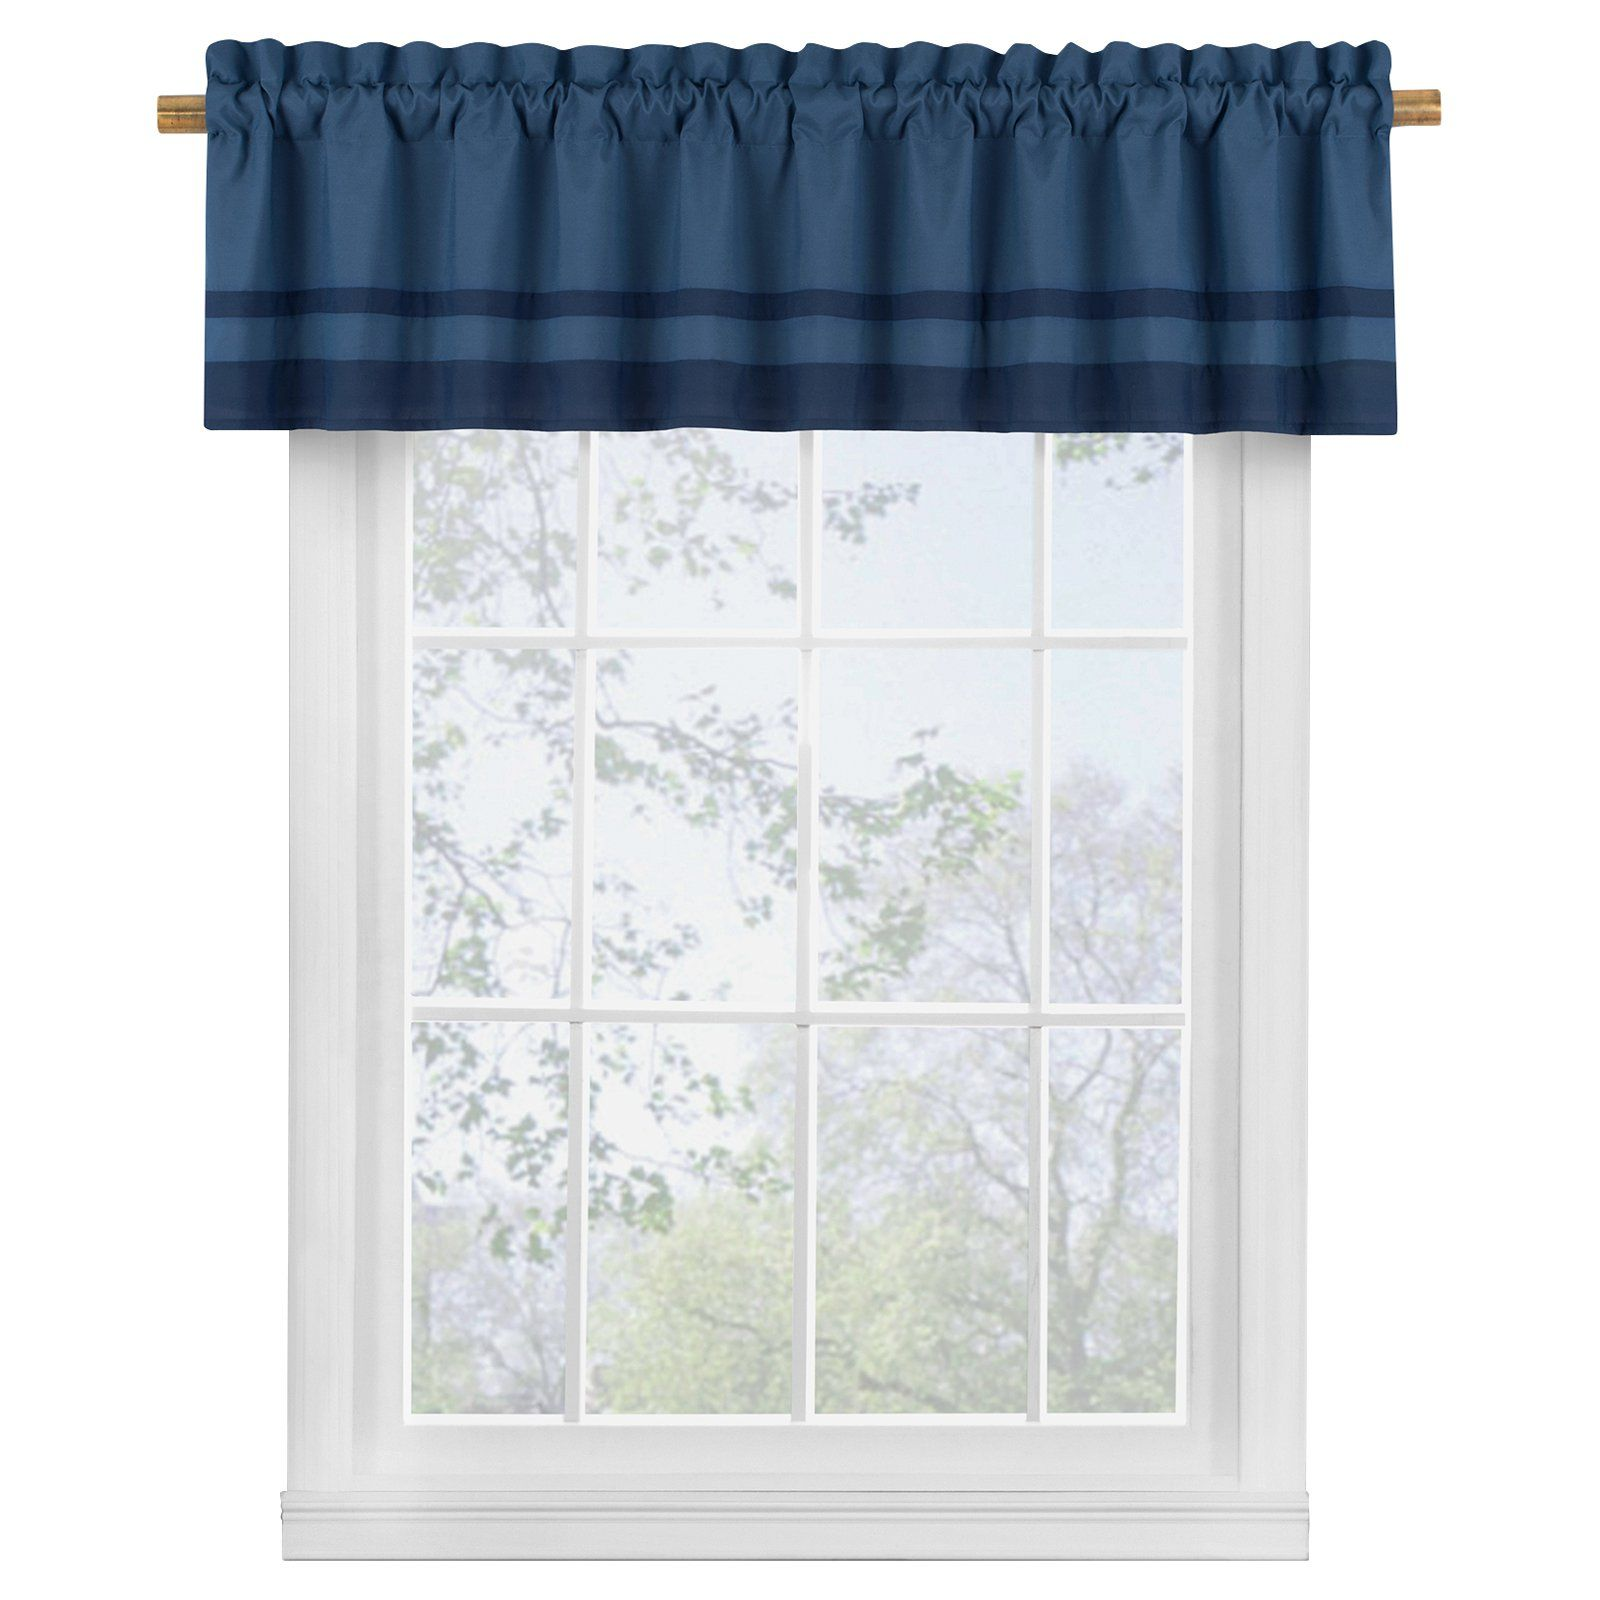 Bensonhurst Window Valance By Vue Signature Blue In 2019 Valance